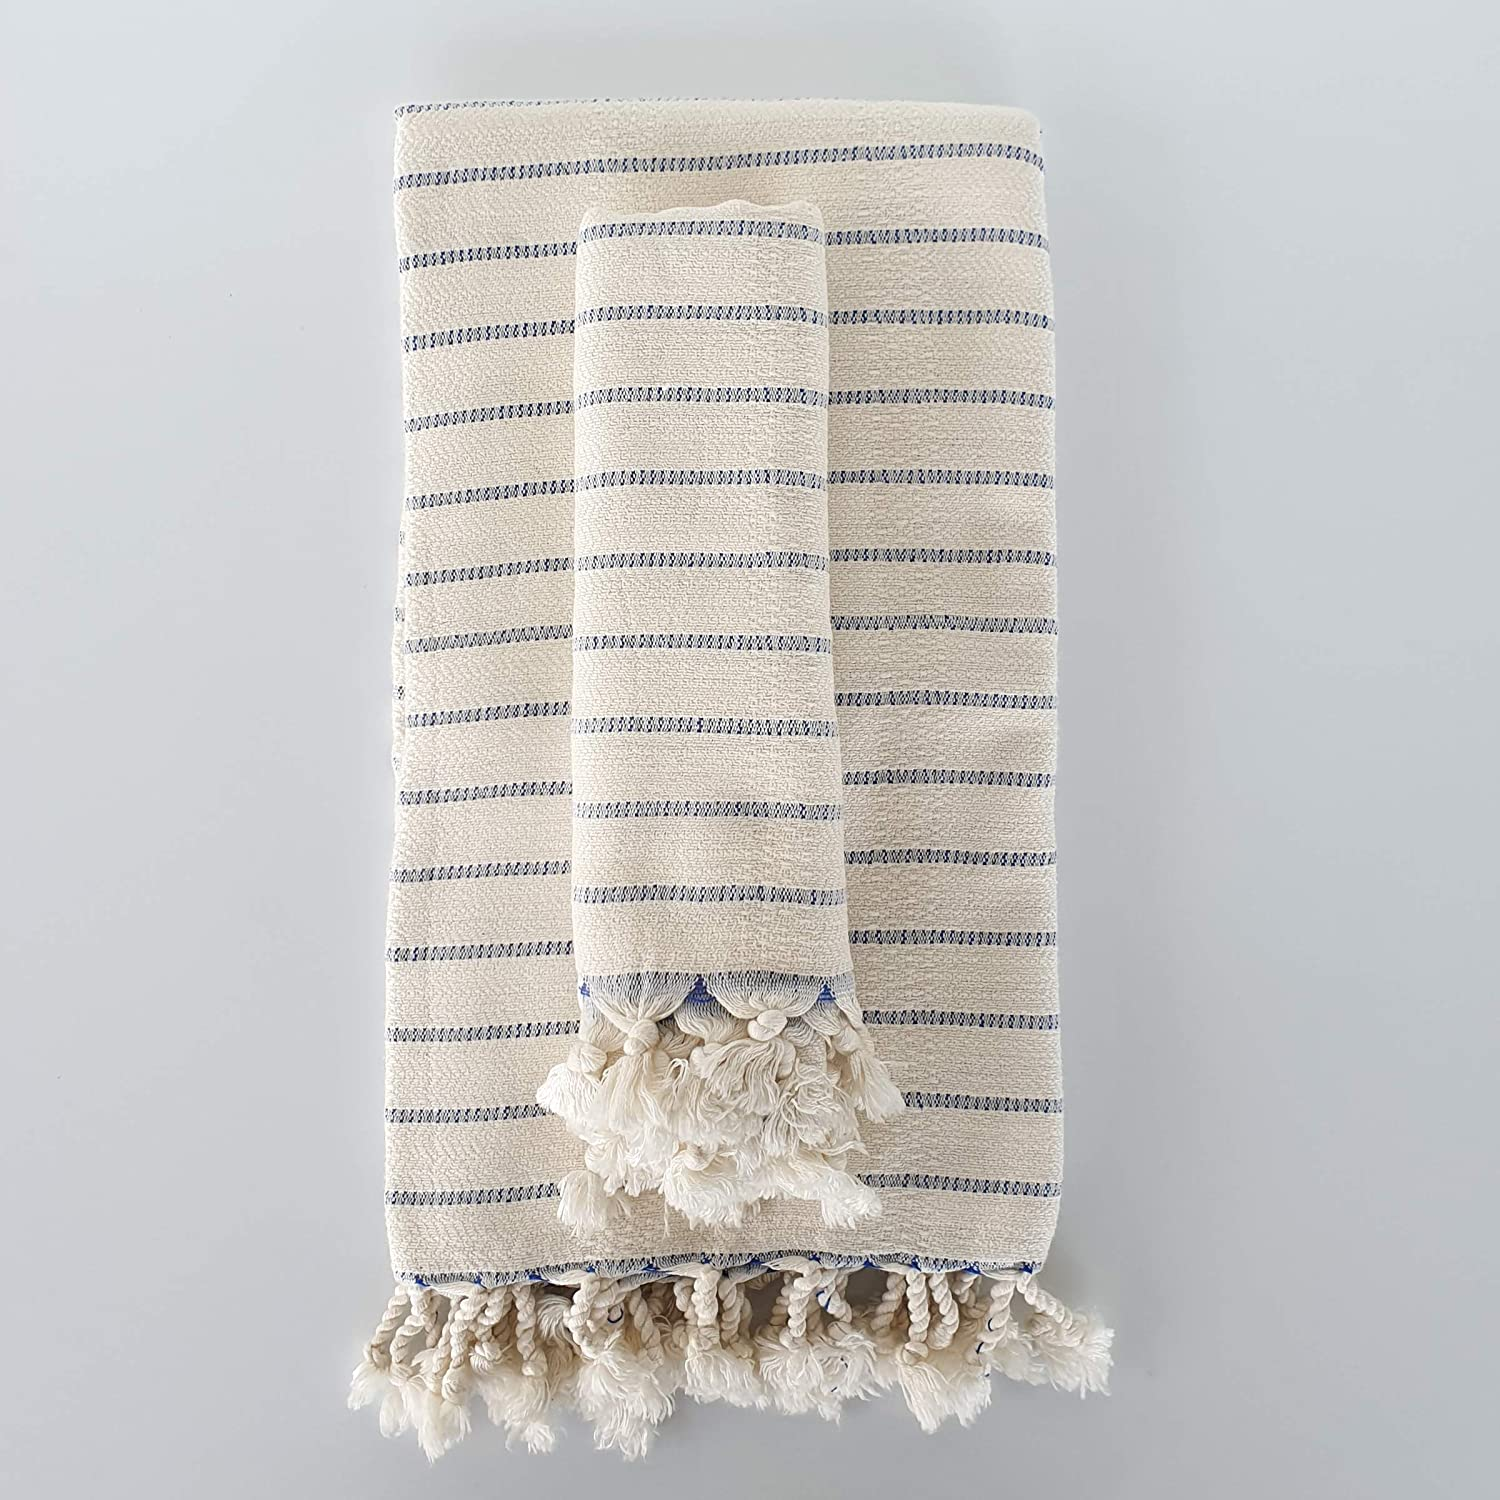 The Loomia Deniz Handwoven Series Bamboo Towel